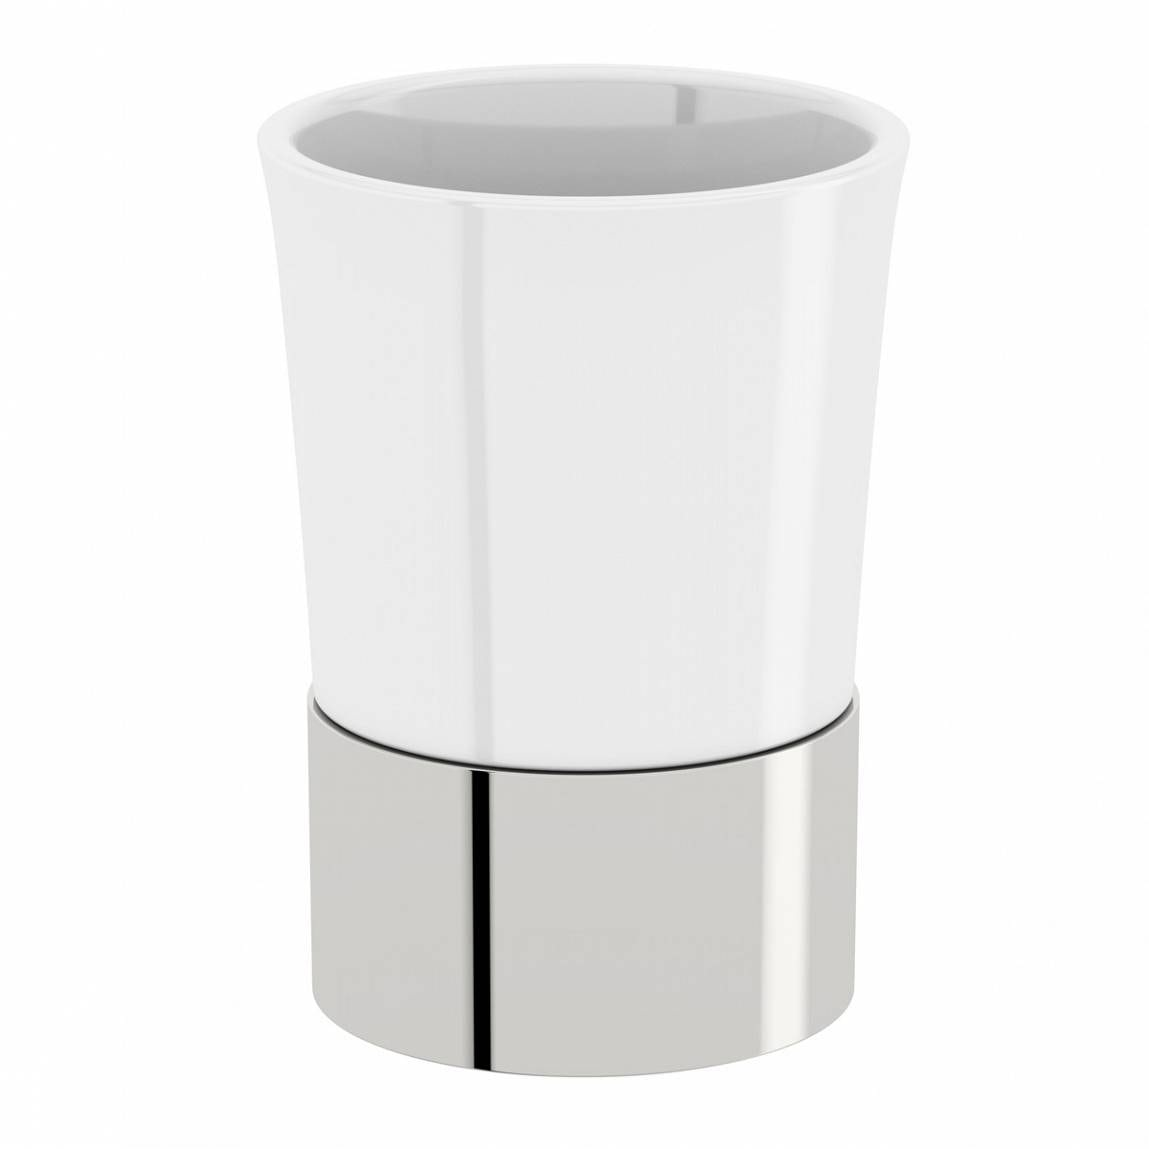 Orchard Options freestanding ceramic tumbler